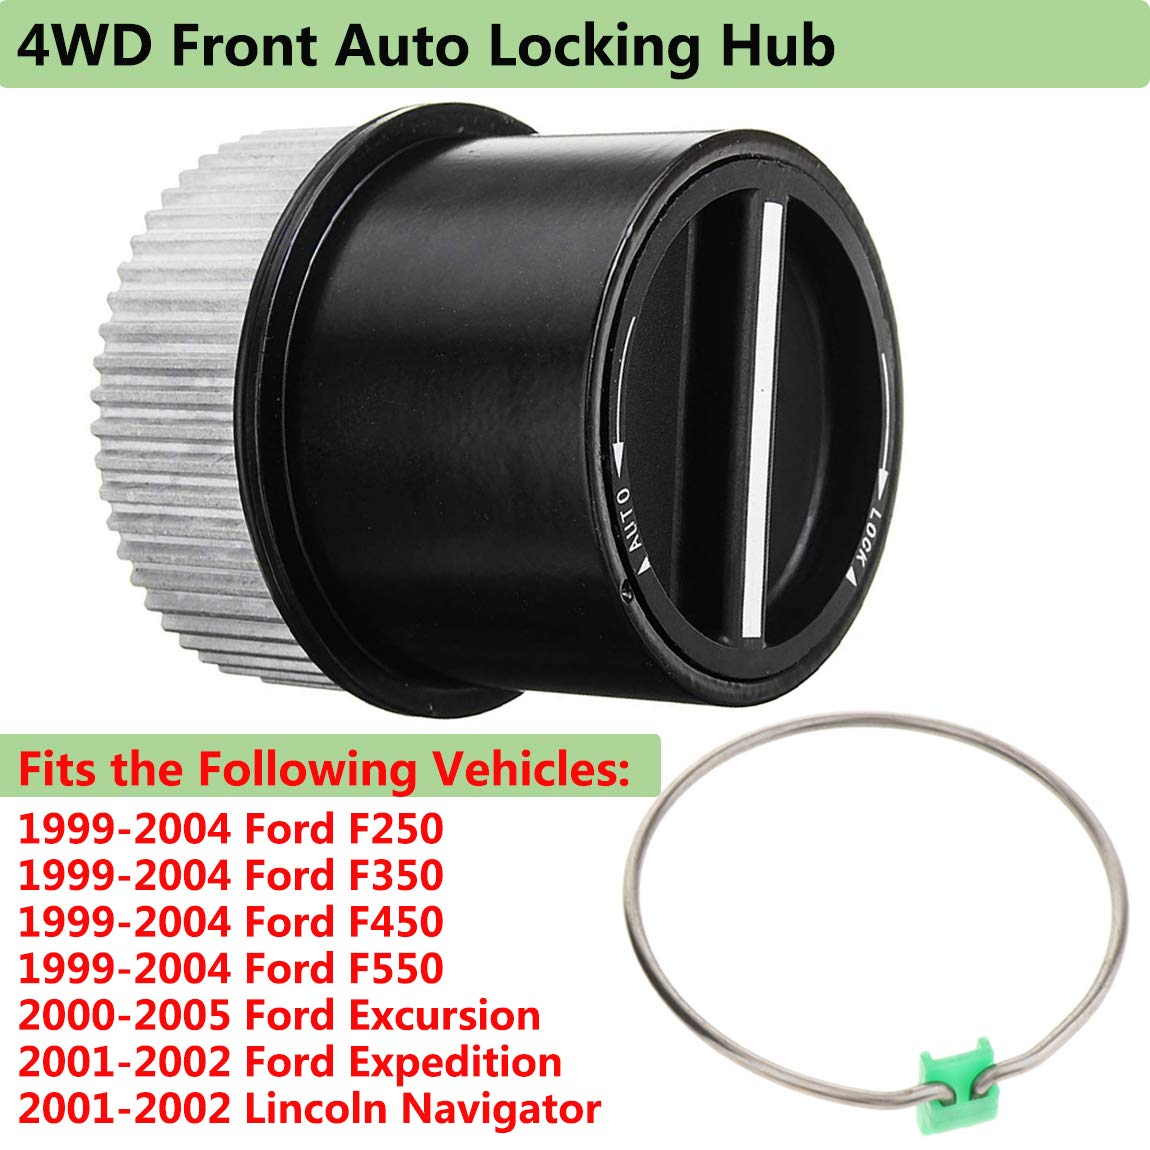 4WD Front Auto Locking Hub Link Front Left or Right,Fit for 1999-2004 Ford F250 F350 F450 F550 Super Duty,2000-2005 Excursion,2001-2002 Lincoln Navigator Expedition,Replaces 1C3Z-3B396-CB 1C3Z3B396CB